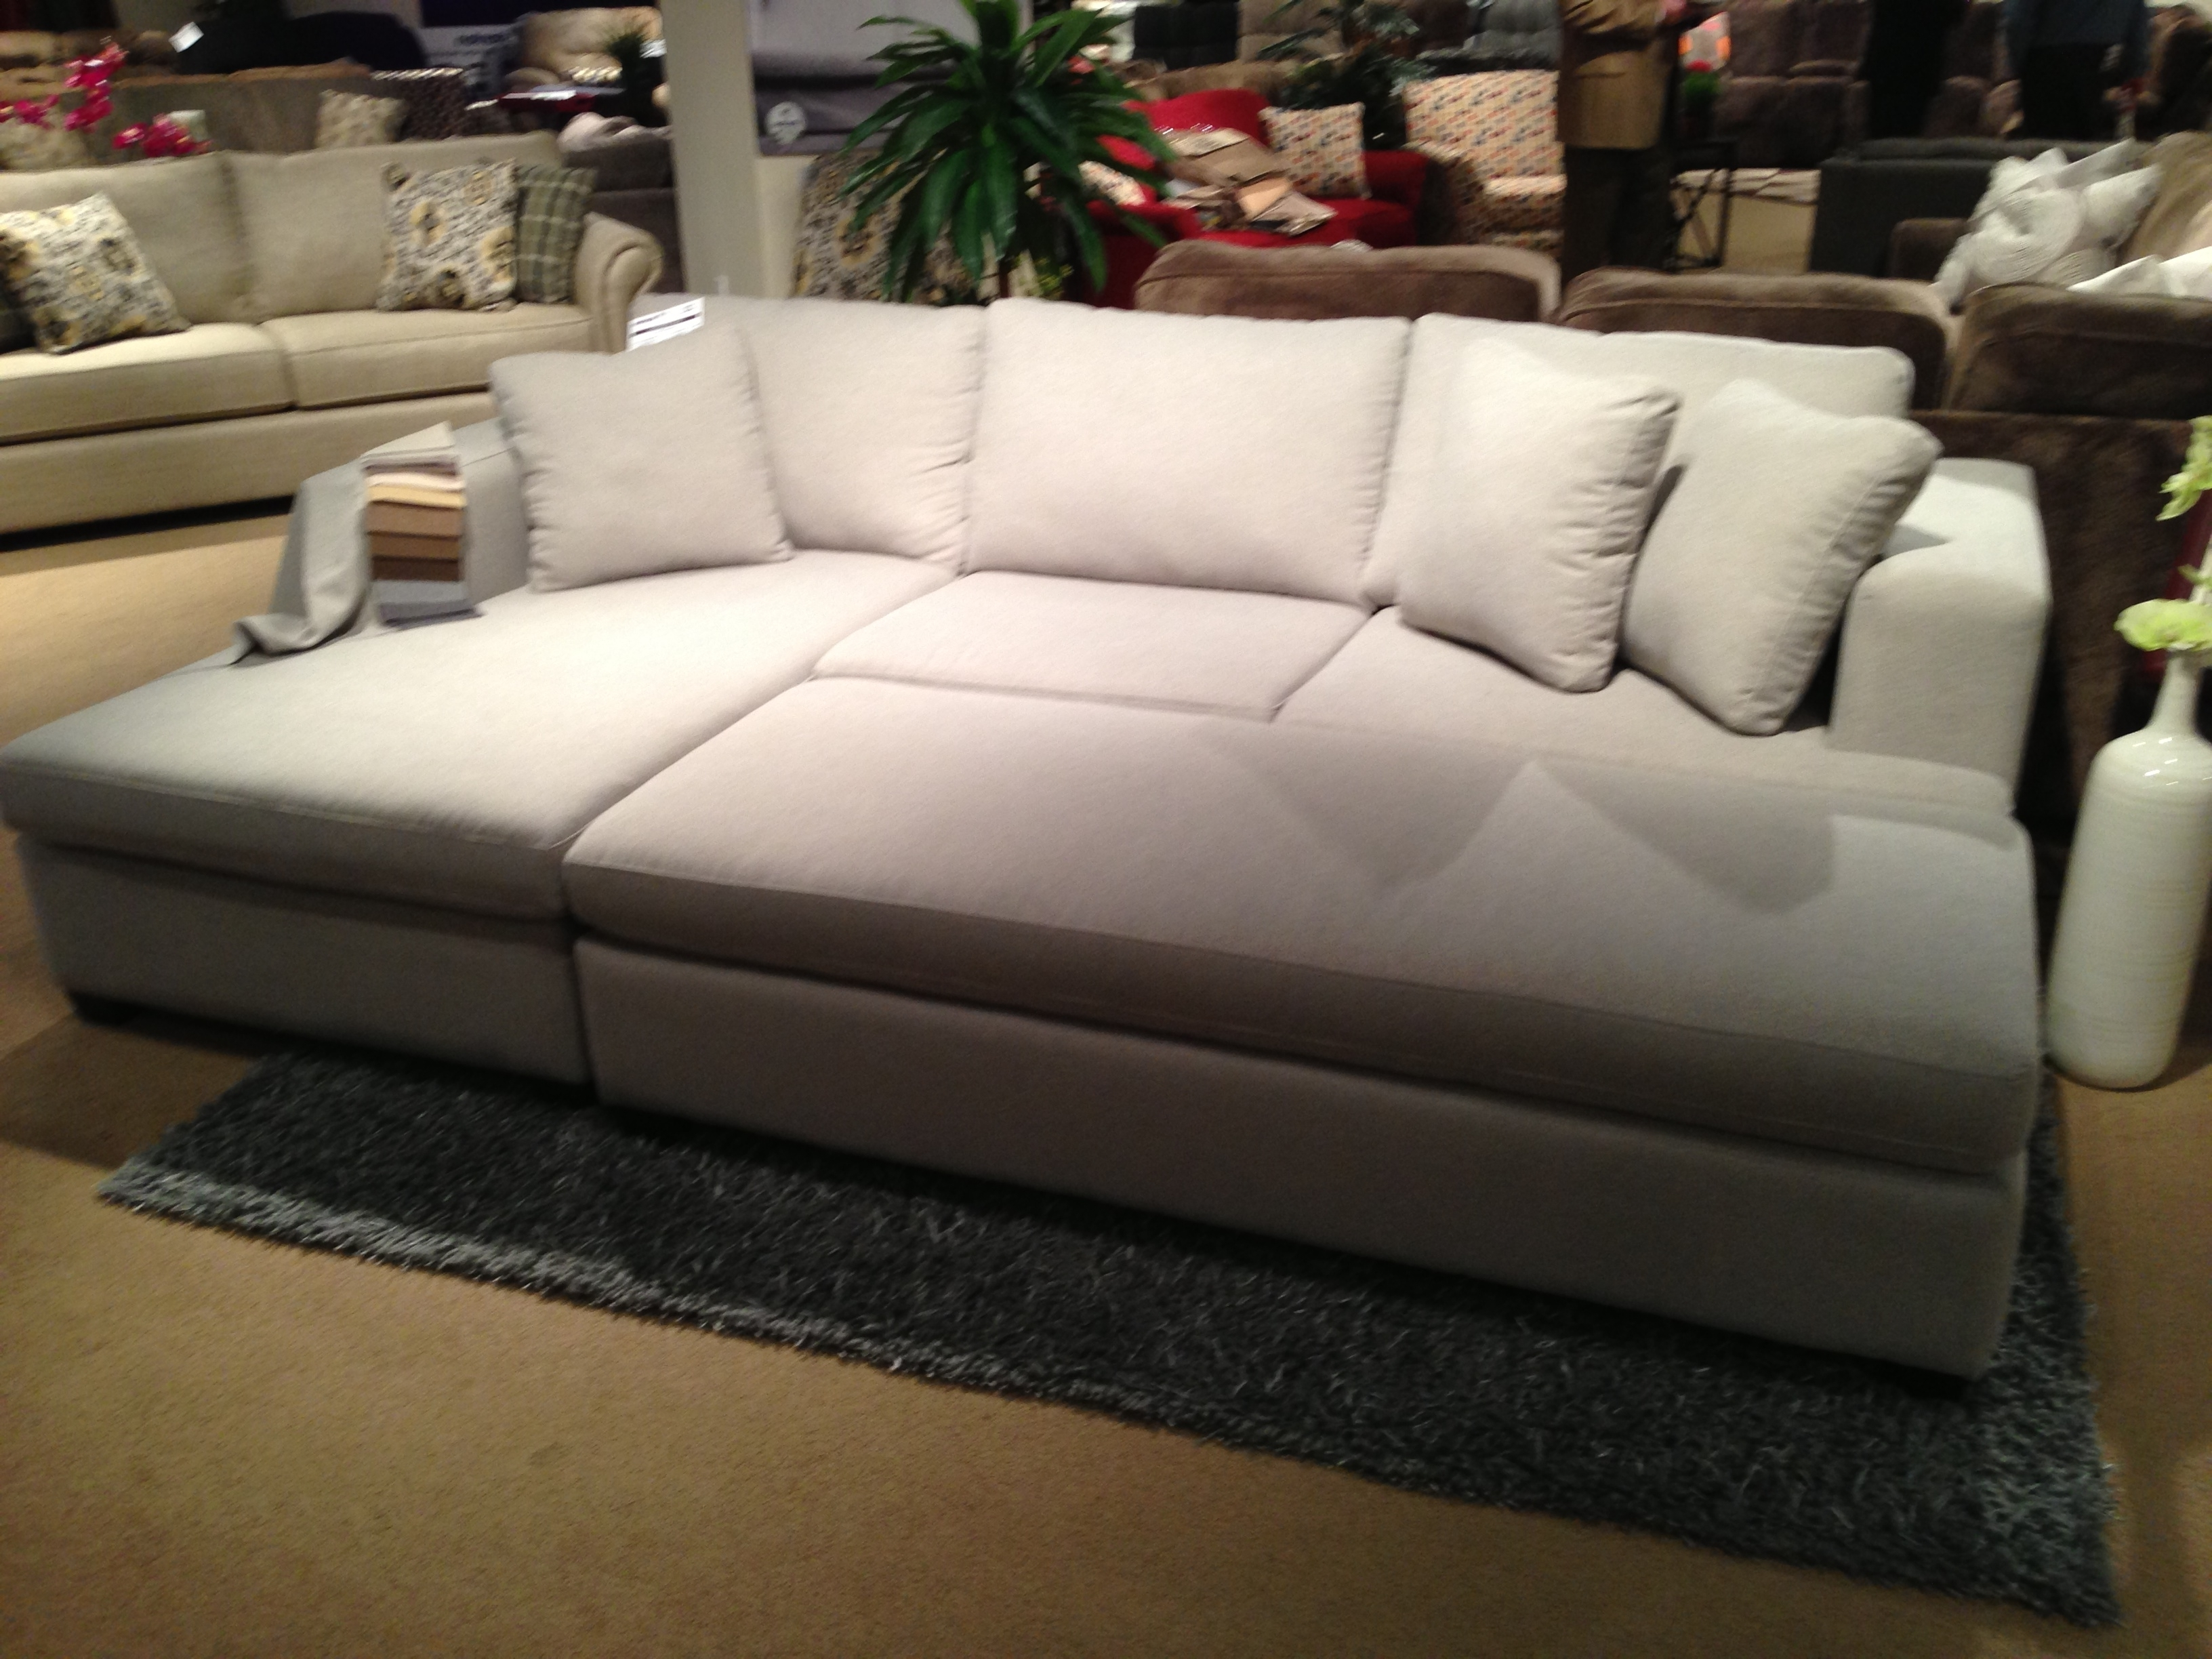 Tweetalk Intended For Sectionals With Ottoman (View 11 of 15)